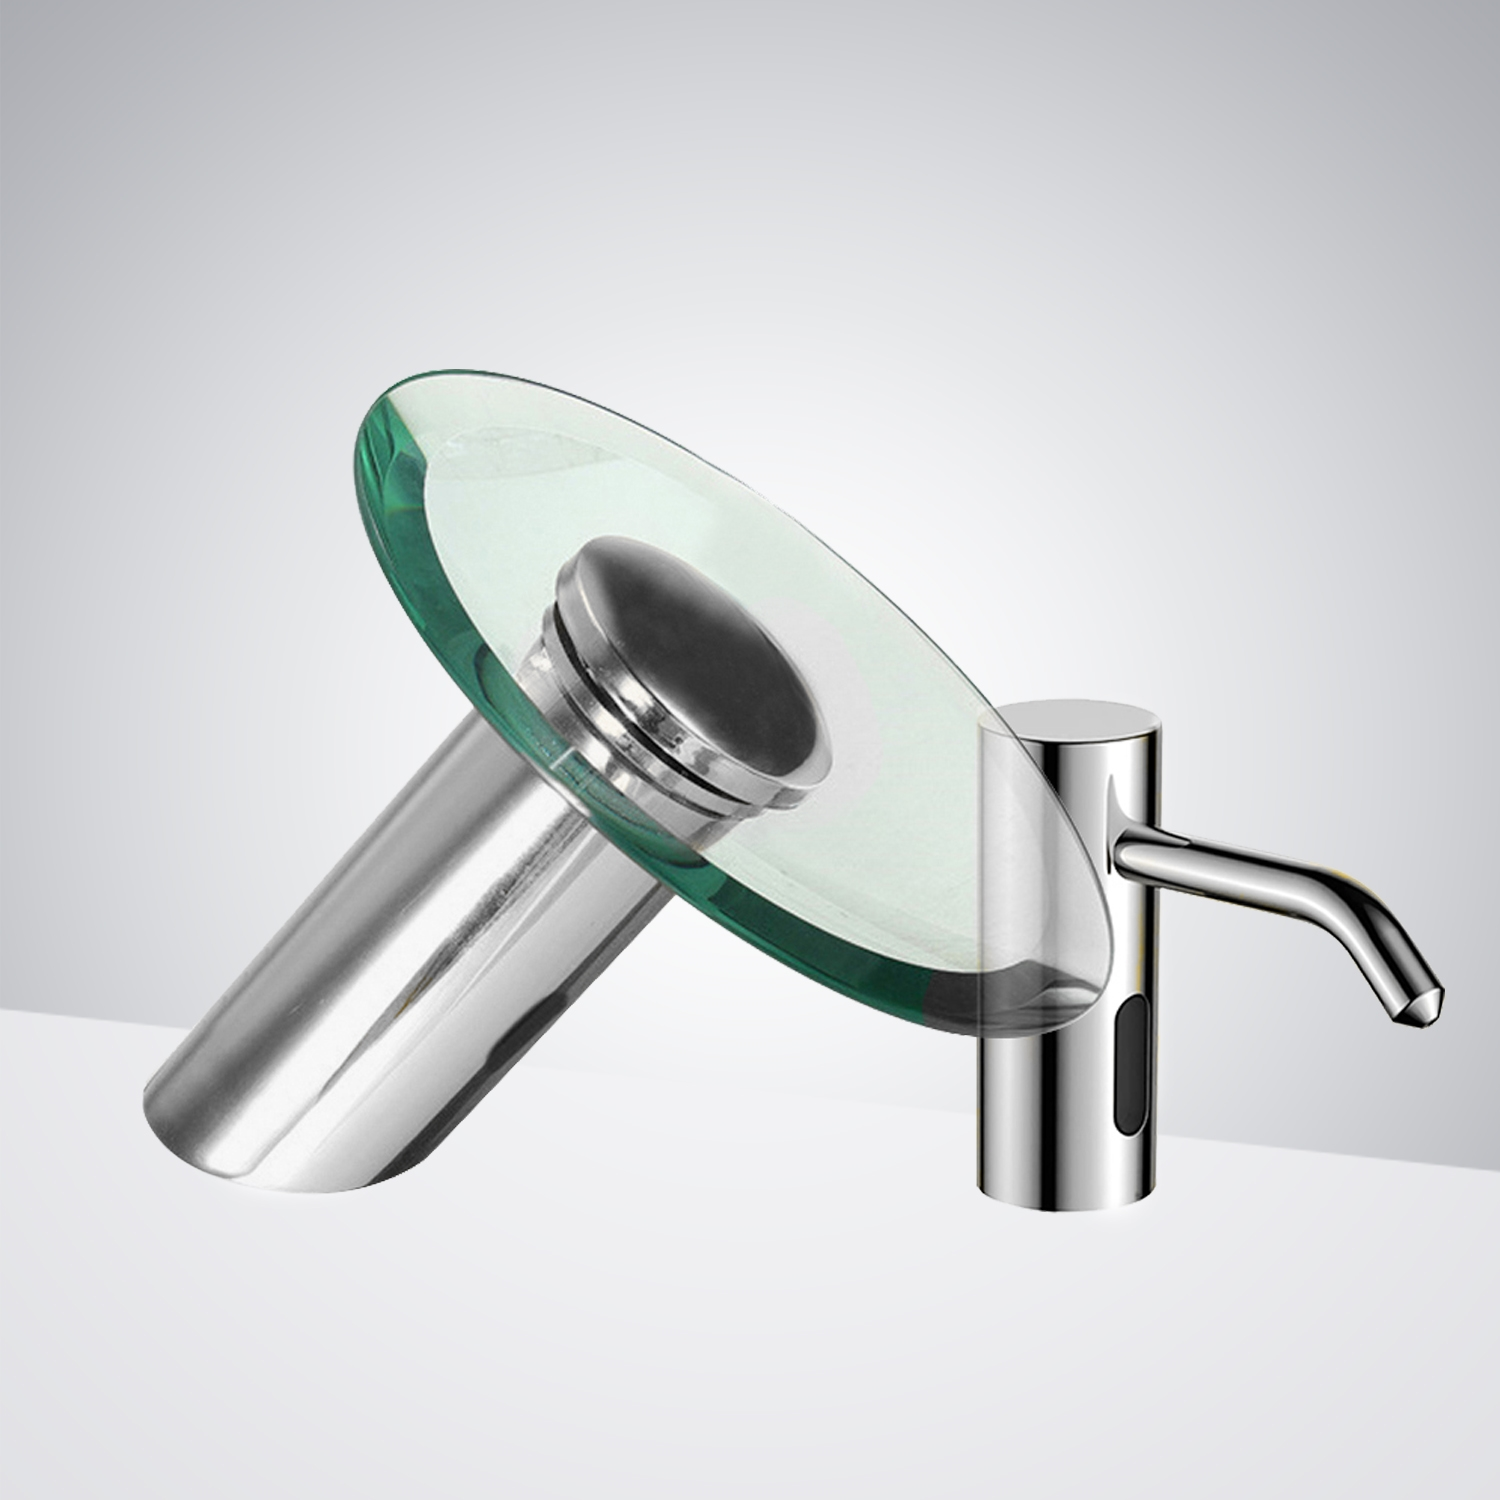 Fontana Sénart Chrome Waterfall Motion Sensor Faucet & Automatic Liquid Foam Soap Dispenser for Restrooms in Chrome